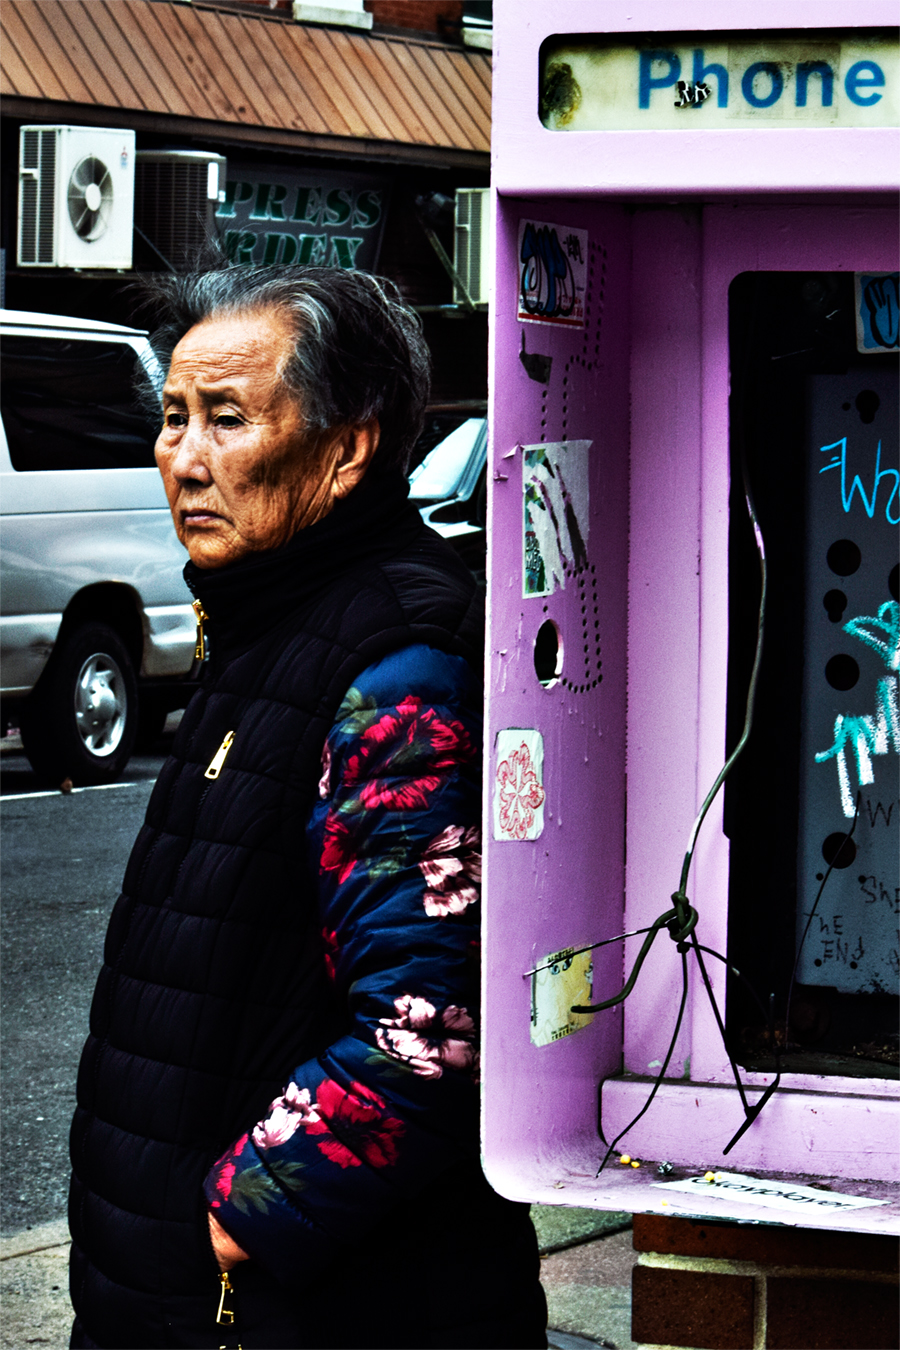 Victoria_Meng_Project3_Philly_Chinese_Elderly_Woman_Old_Pay_Phone_Pink_Pastel_Contrast_Chinatown_Philadelphia